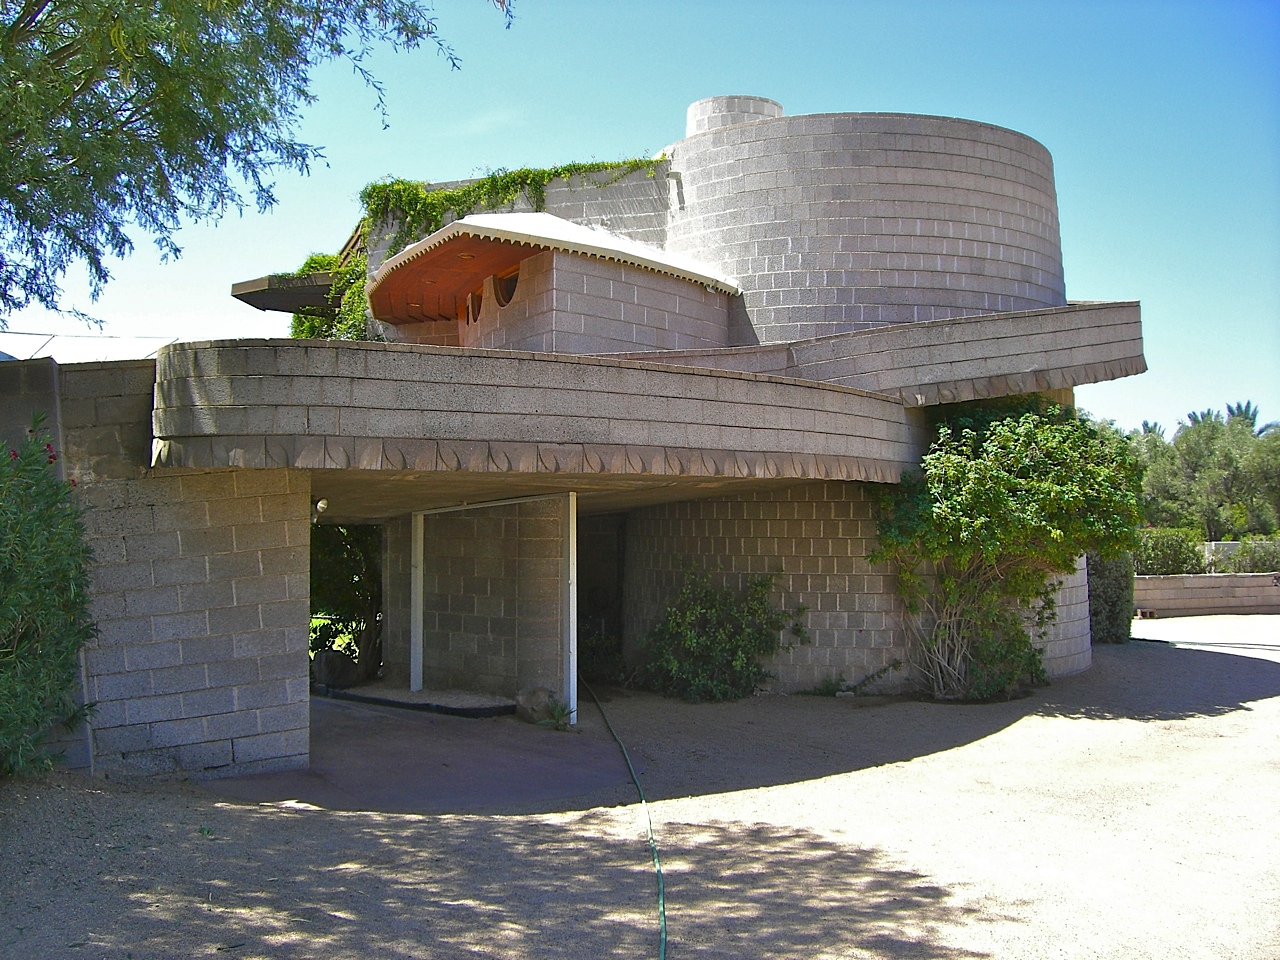 Photo by Scott Jarson, ©2012 azarchitecture.com / Photo courtesy of the Frank Lloyd Wright Building Conservancy